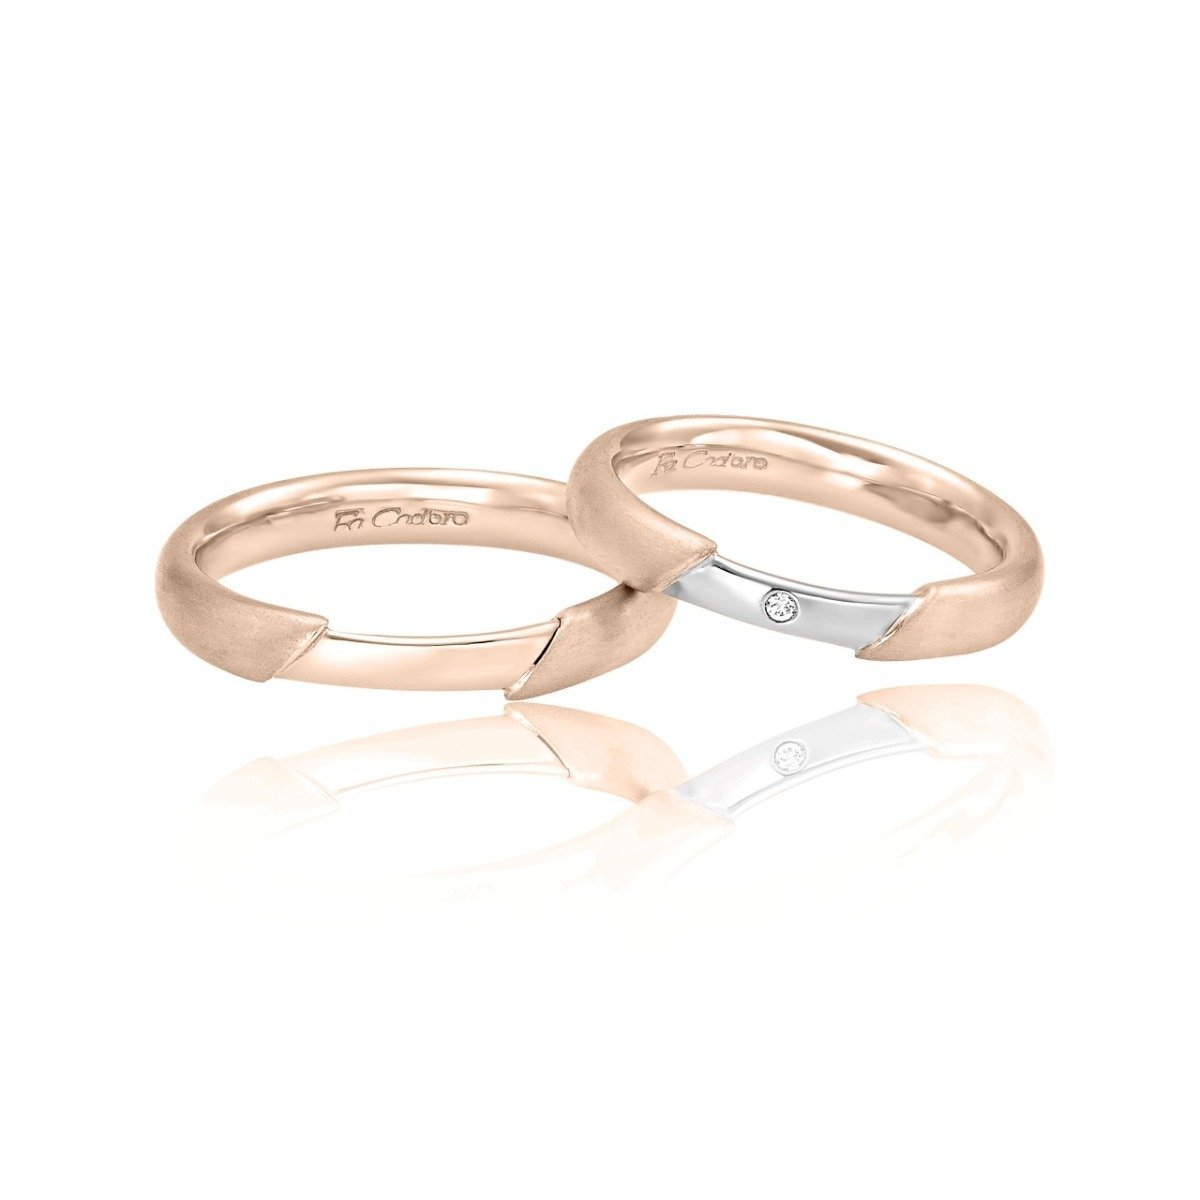 FaCad'oro WR-32 14ct Gold Wedding Rings - Goldy Jewelry Store